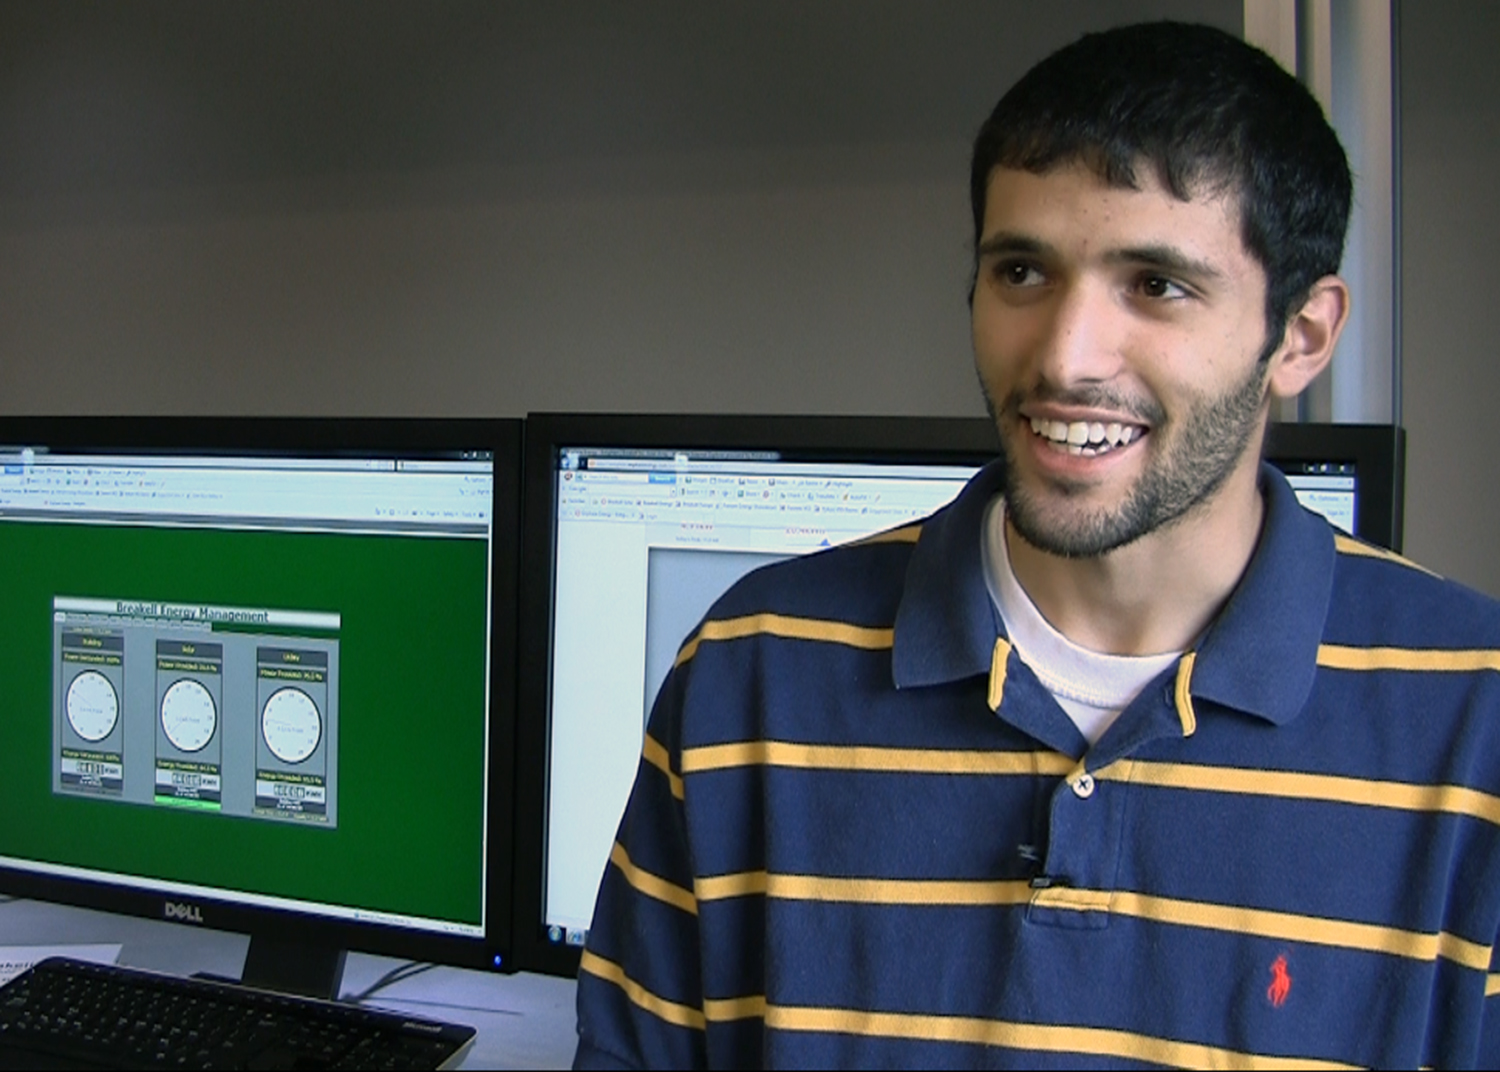 Nader Rasoul at Breakell, a Roanoke-based company